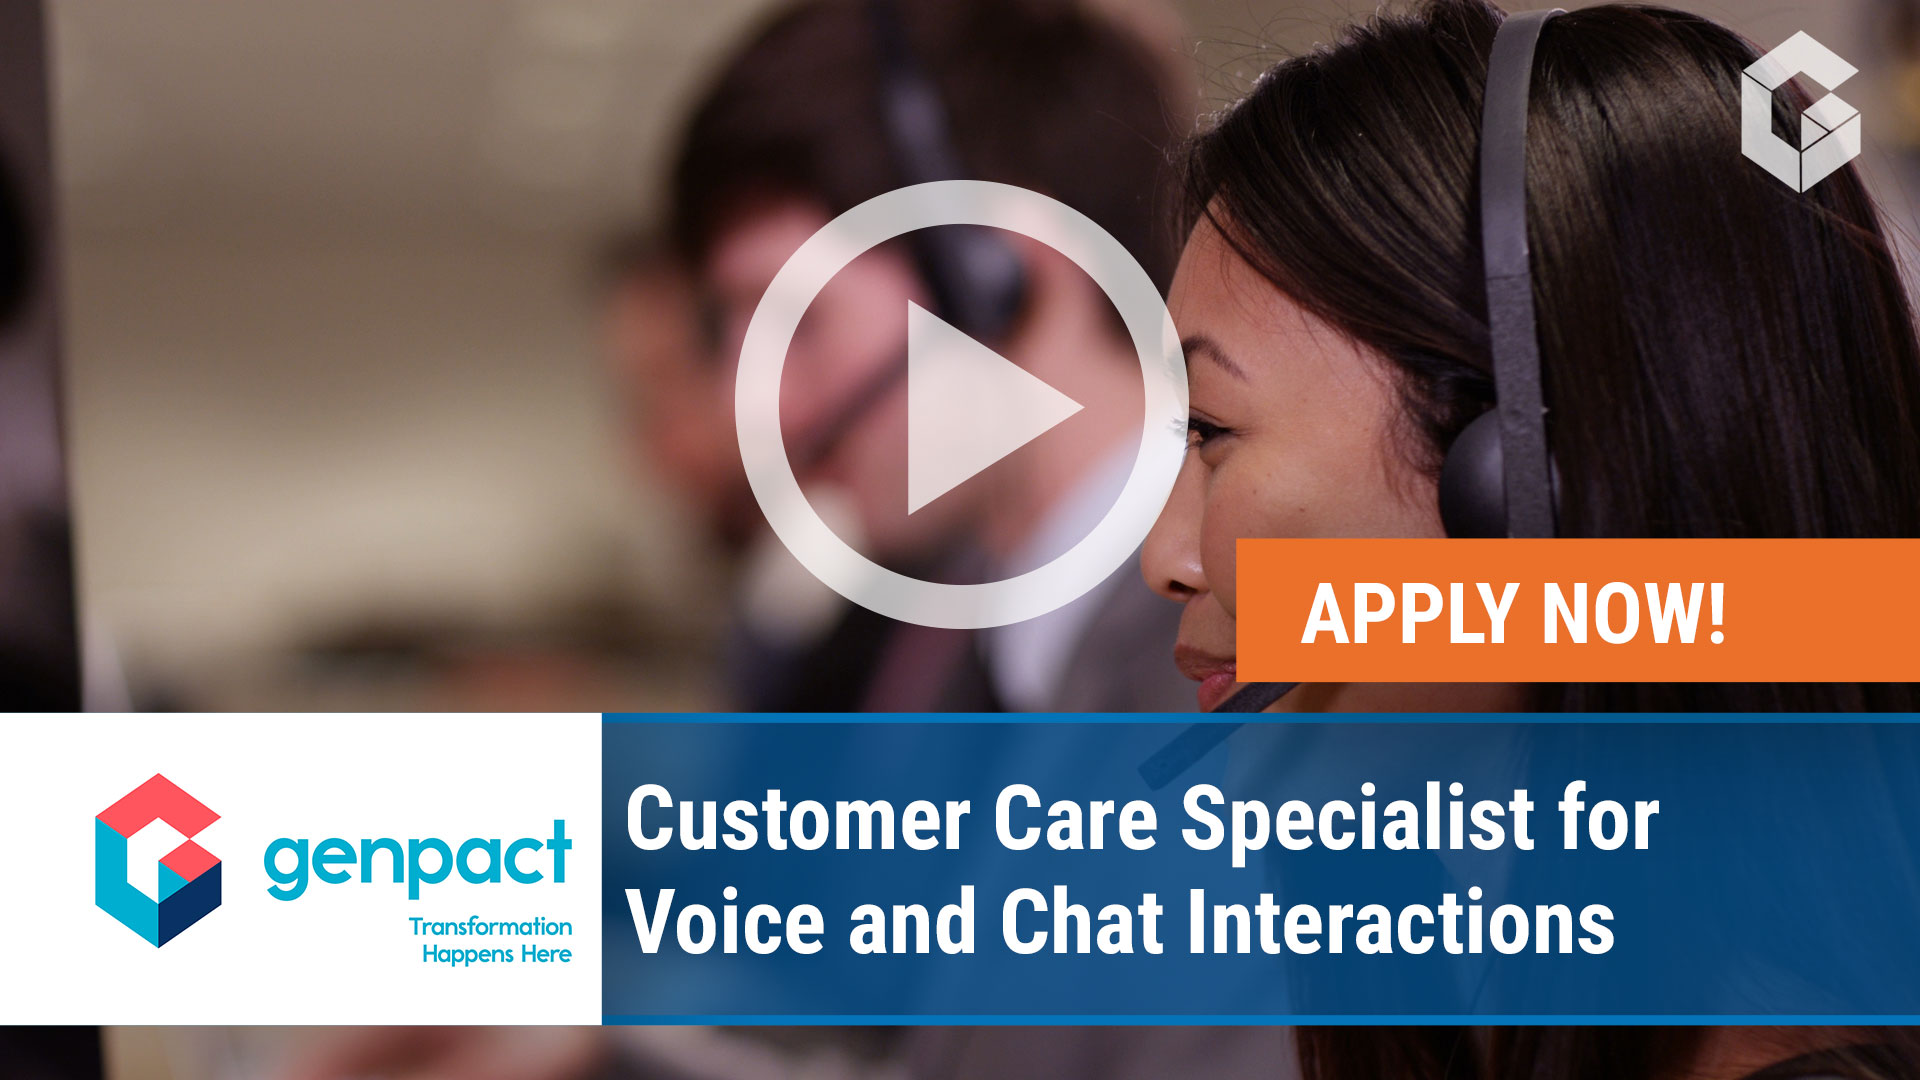 Watch our careers video for available job opening Customer Care Specialist for Voice and Chat Interactions in Richardson, Texas